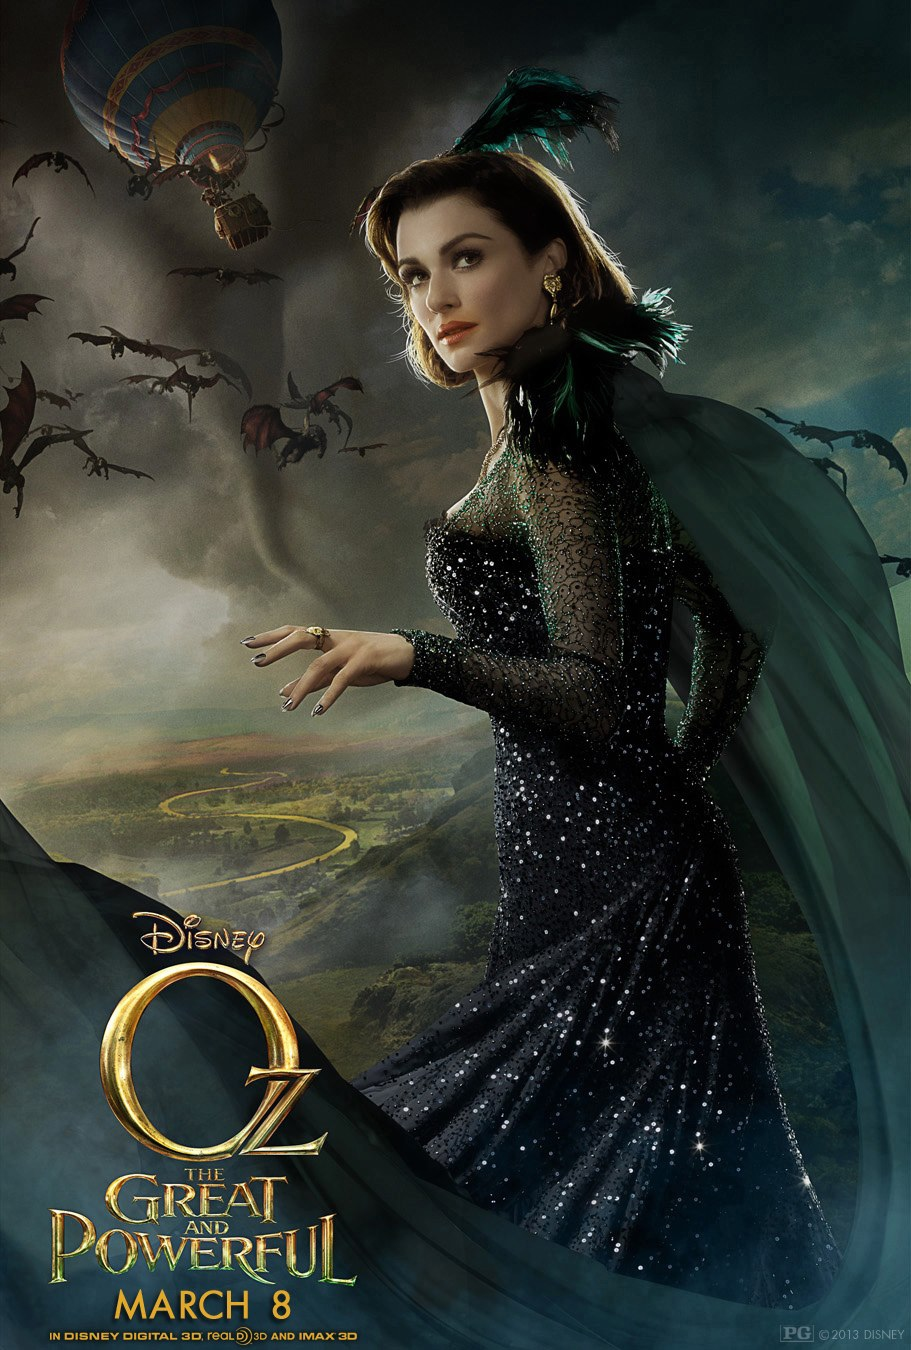 Oz the Great and Powerful - Movie Poster #6 (Original)